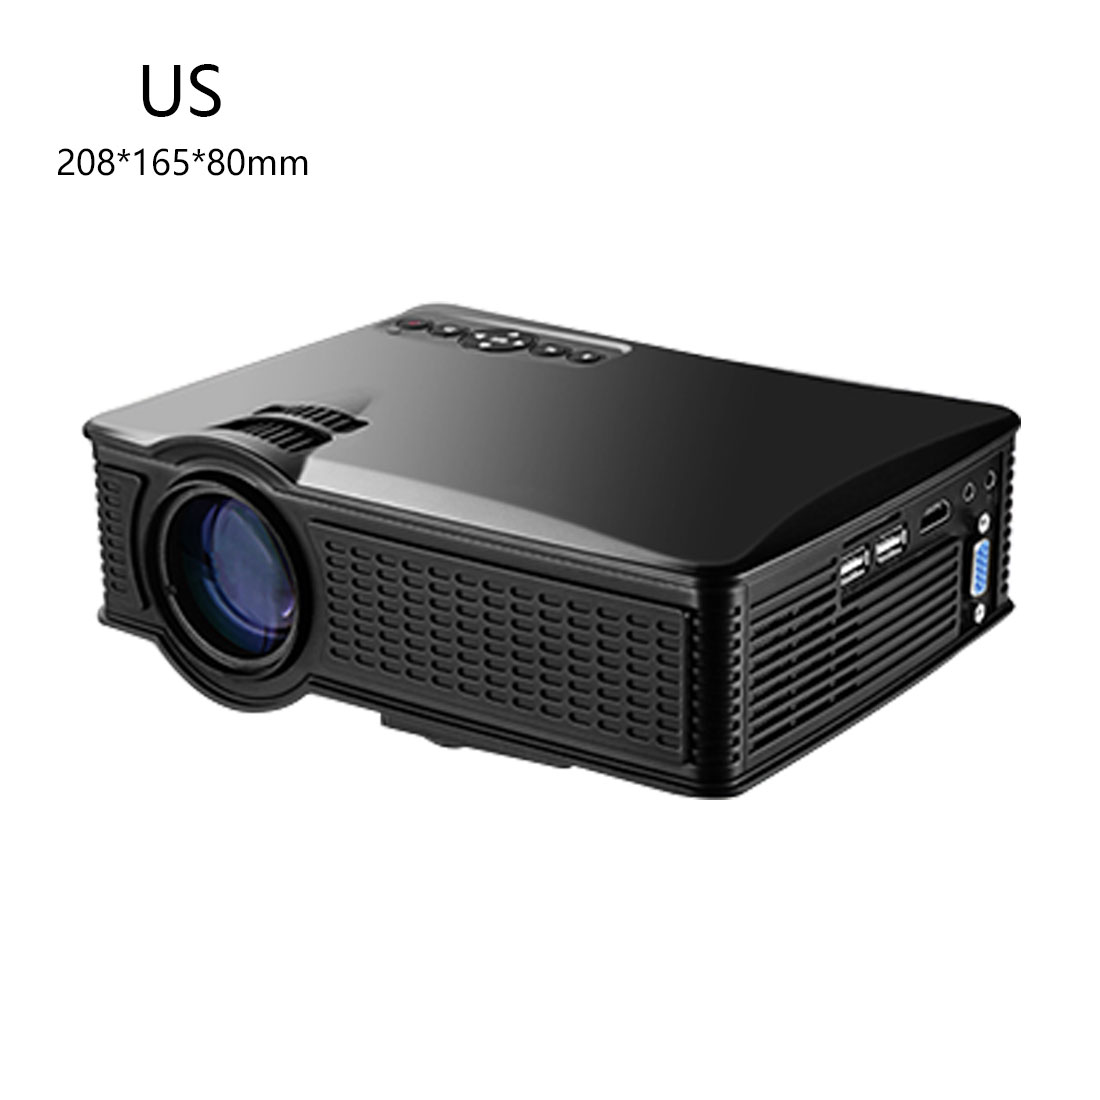 centechia US Plug Hot Sale LY40 LCD Projector 800X480 Support 1080P With HDMI USB AV SD Input For Children Education диванная подушка shingeki kyojin 40 x 60 e4780